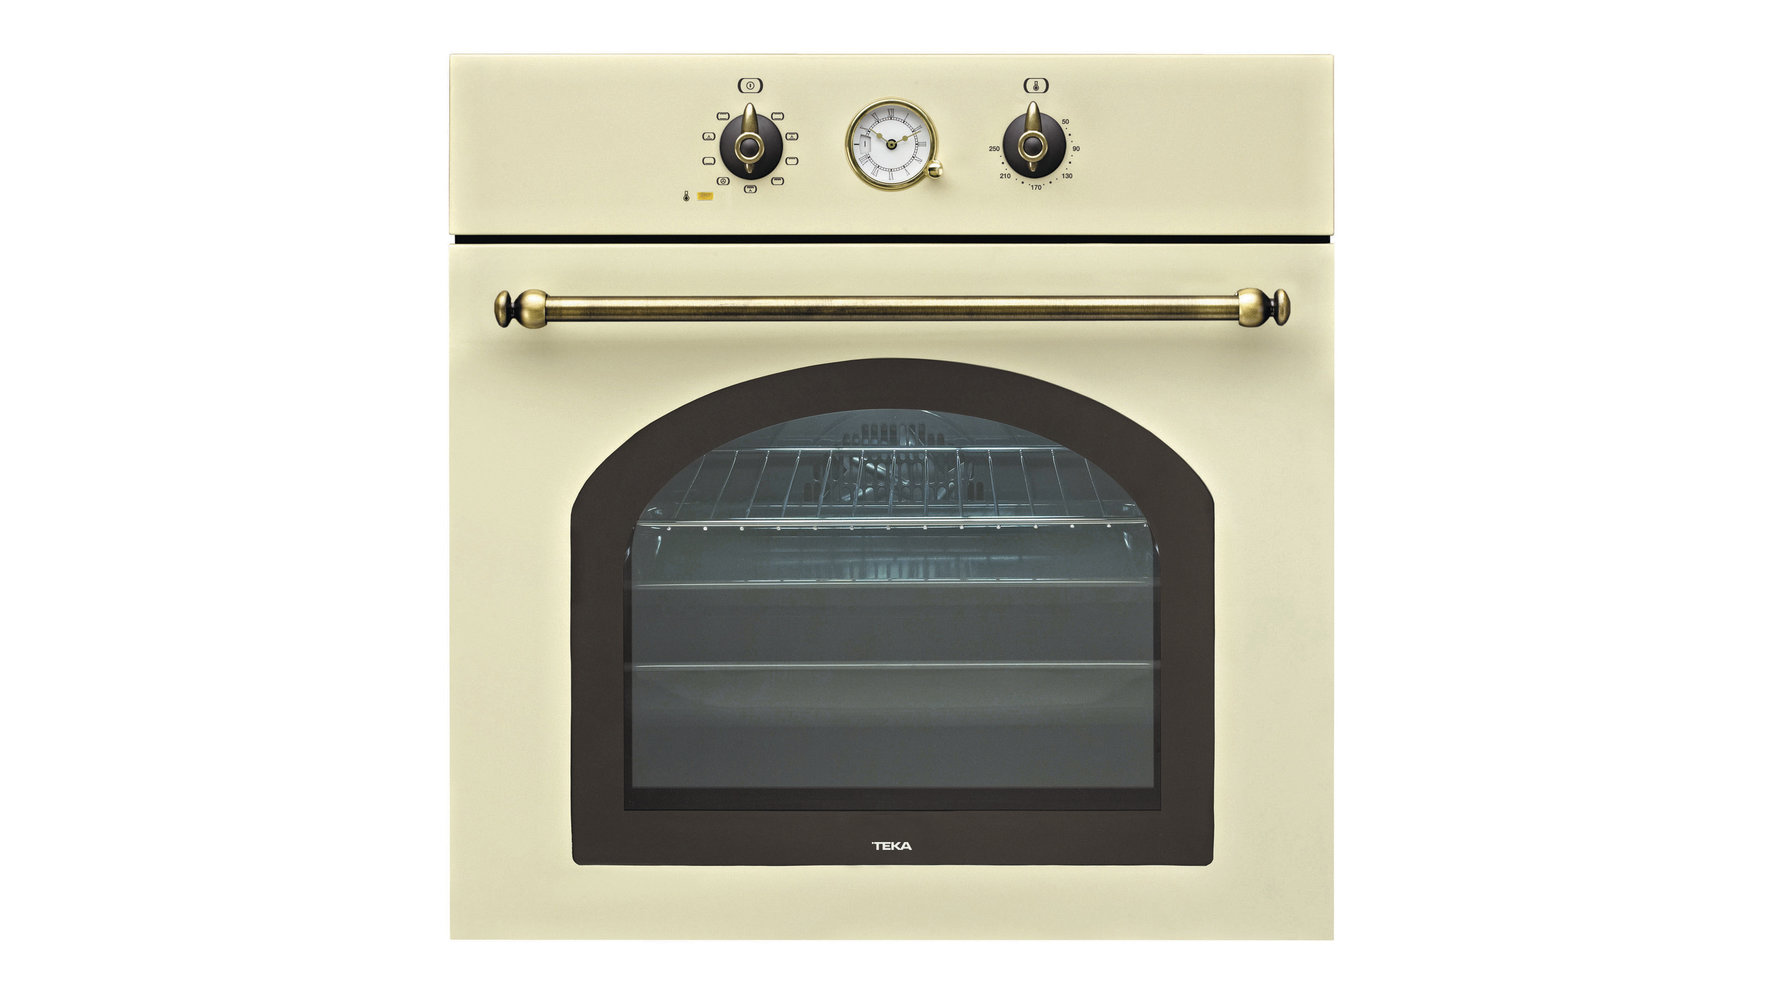 Multifunction SurroundTemp oven in 60 cm